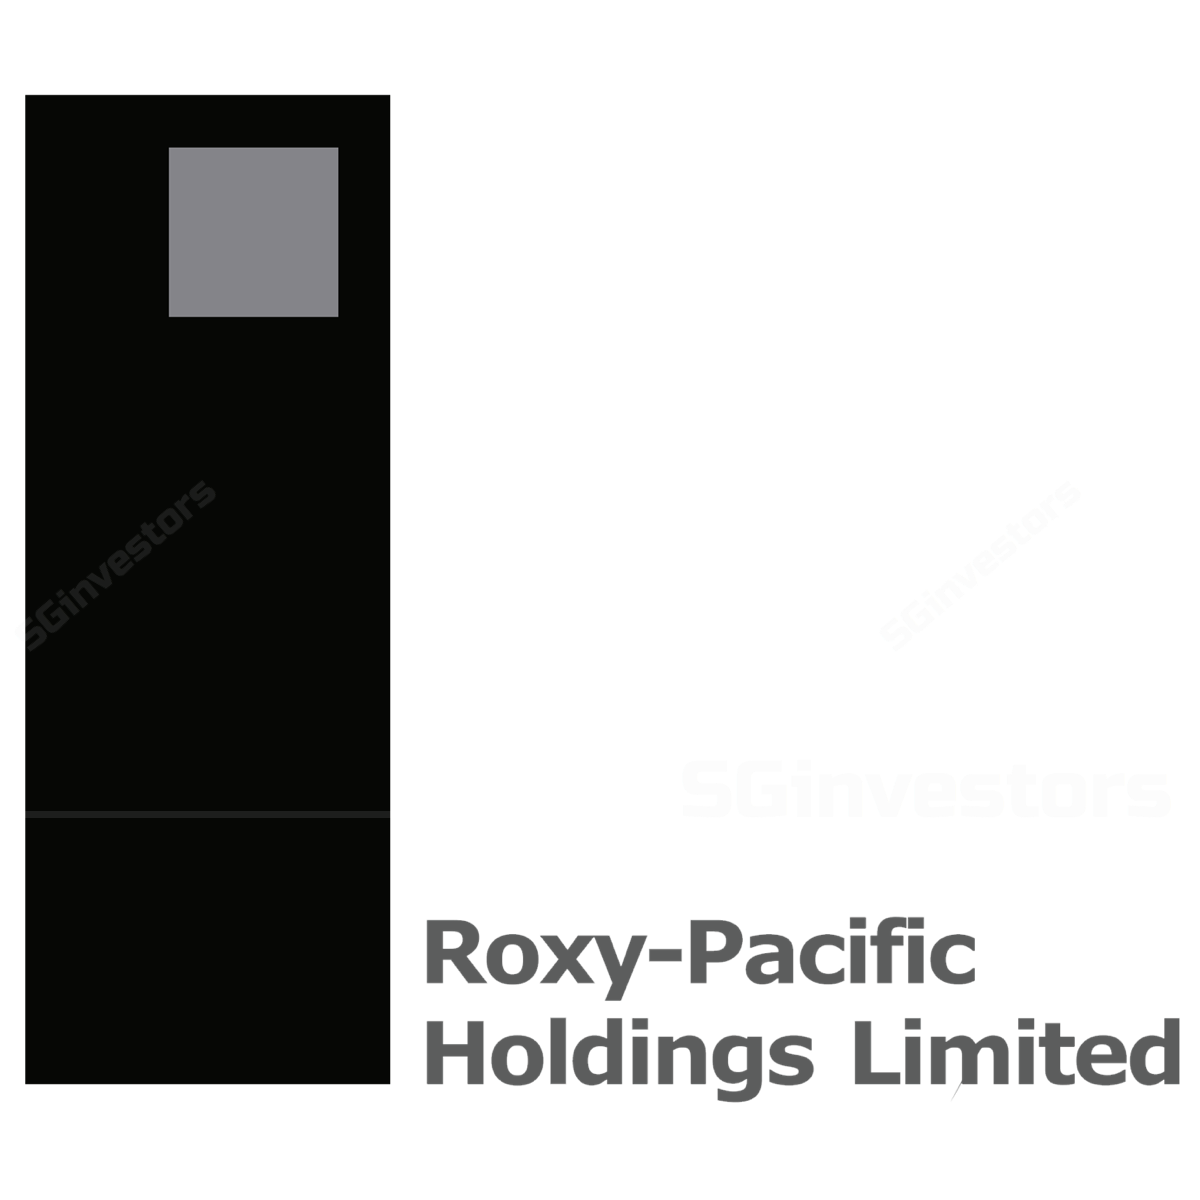 Roxy-Pacific Holdings - DBS Vickers 2018-02-15: Ready, Set, Go!